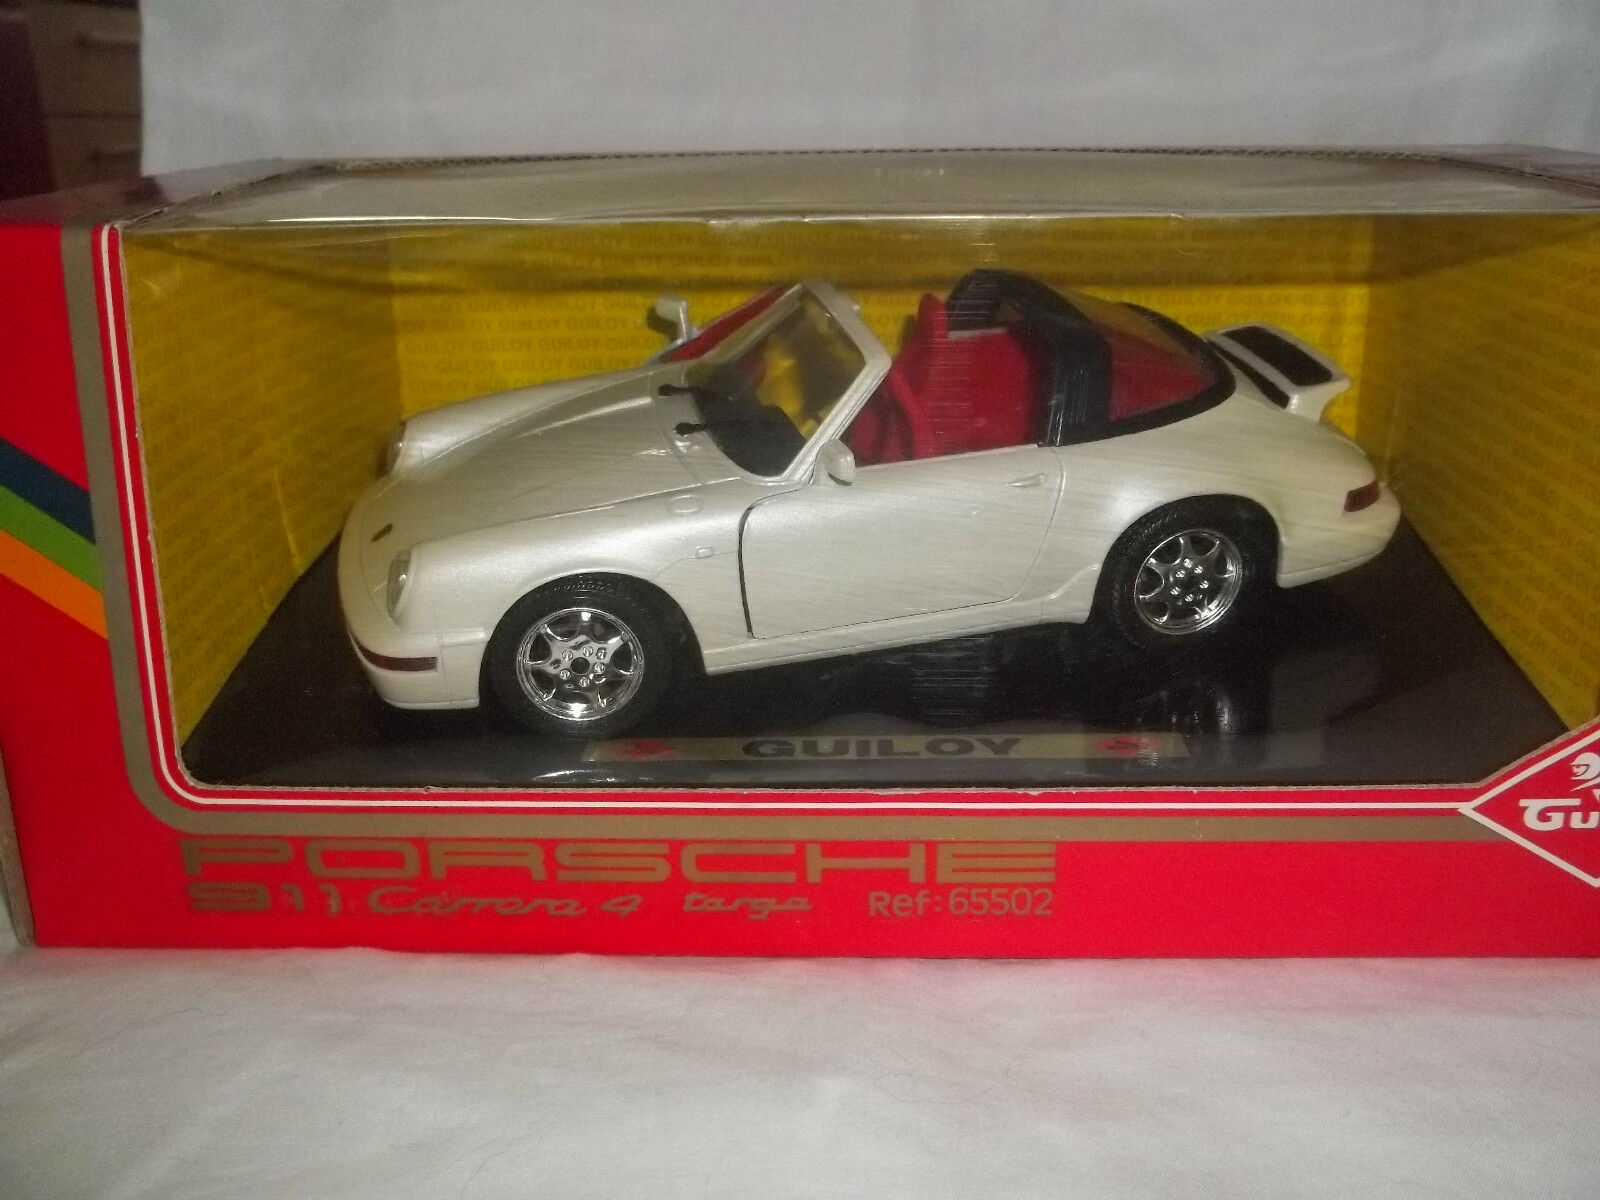 Guiloy 65502 Porsche 911 Carrera 4 Targa 1 20 Mint & Boxed